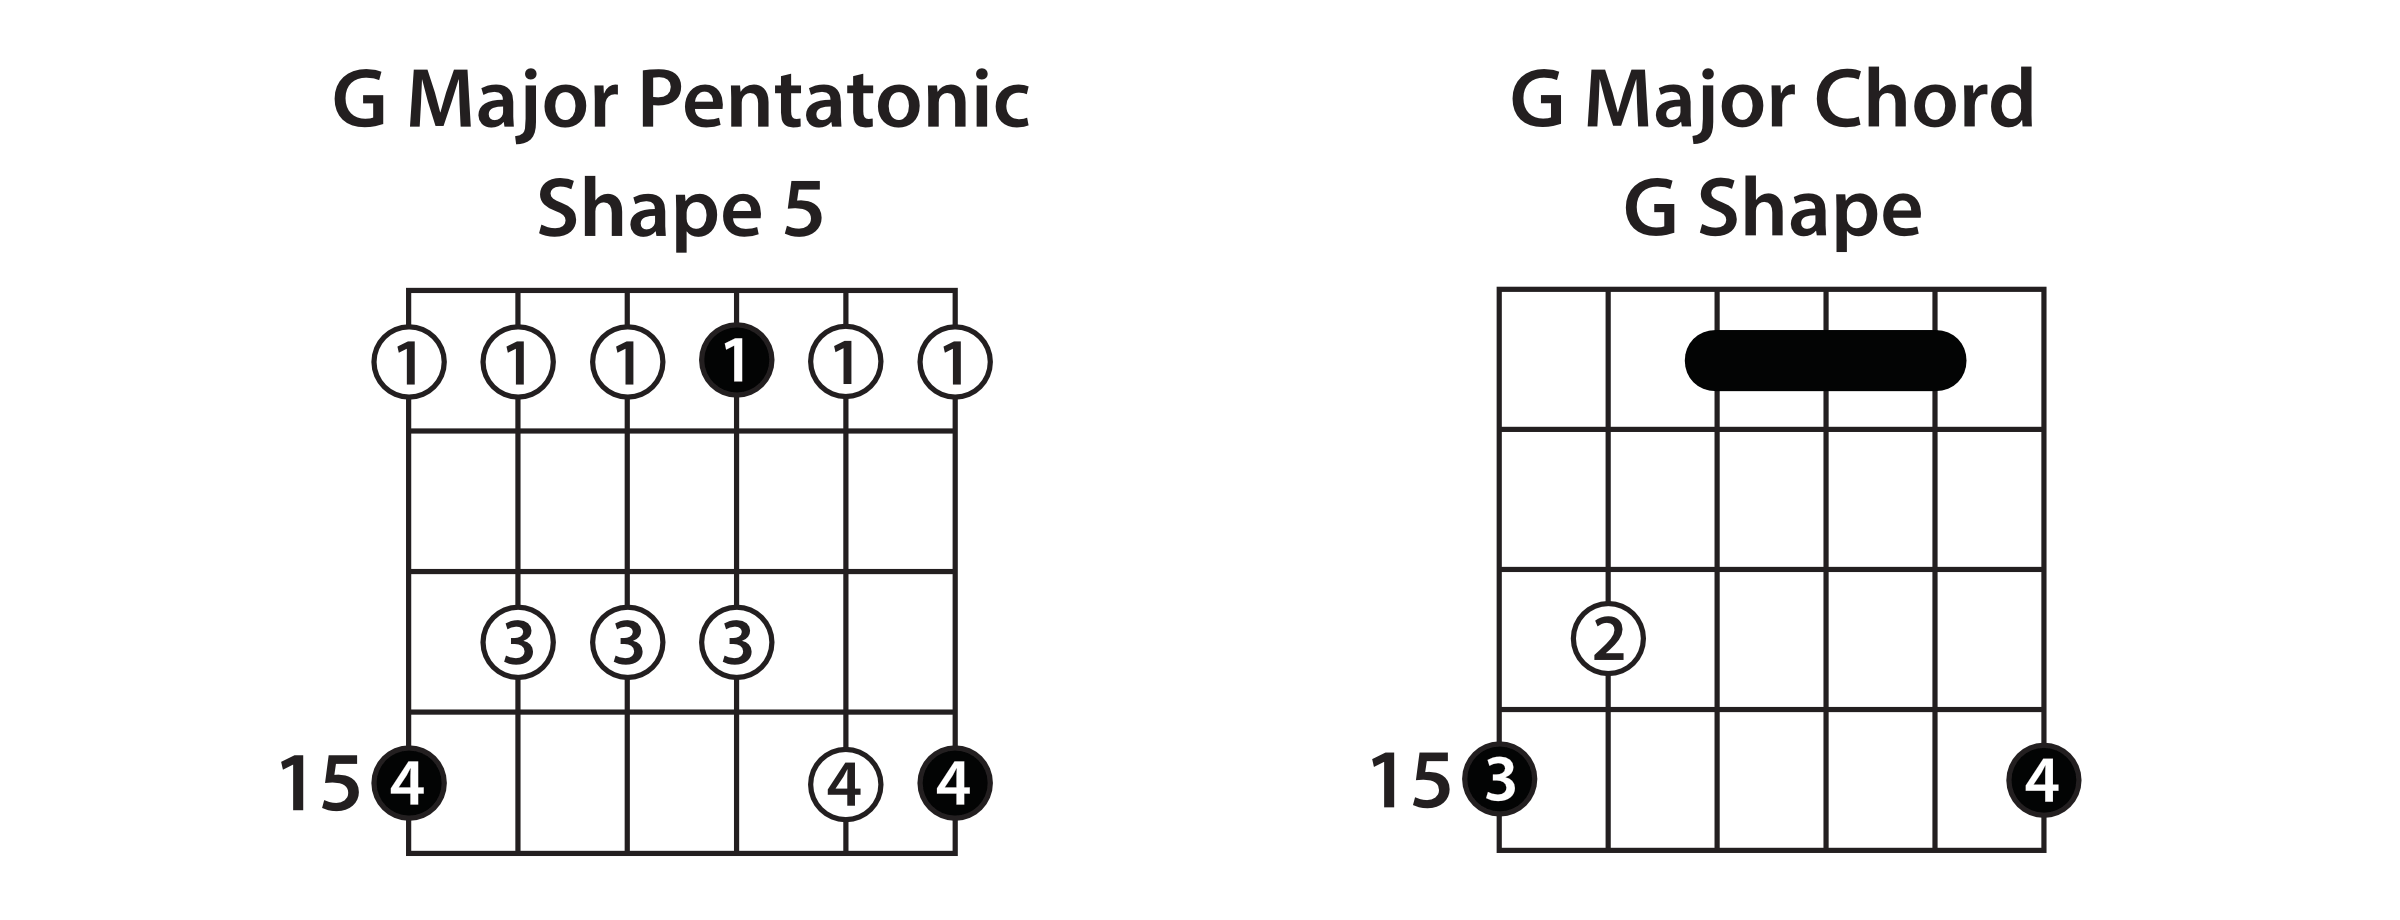 Major Pentatonic Shape 5